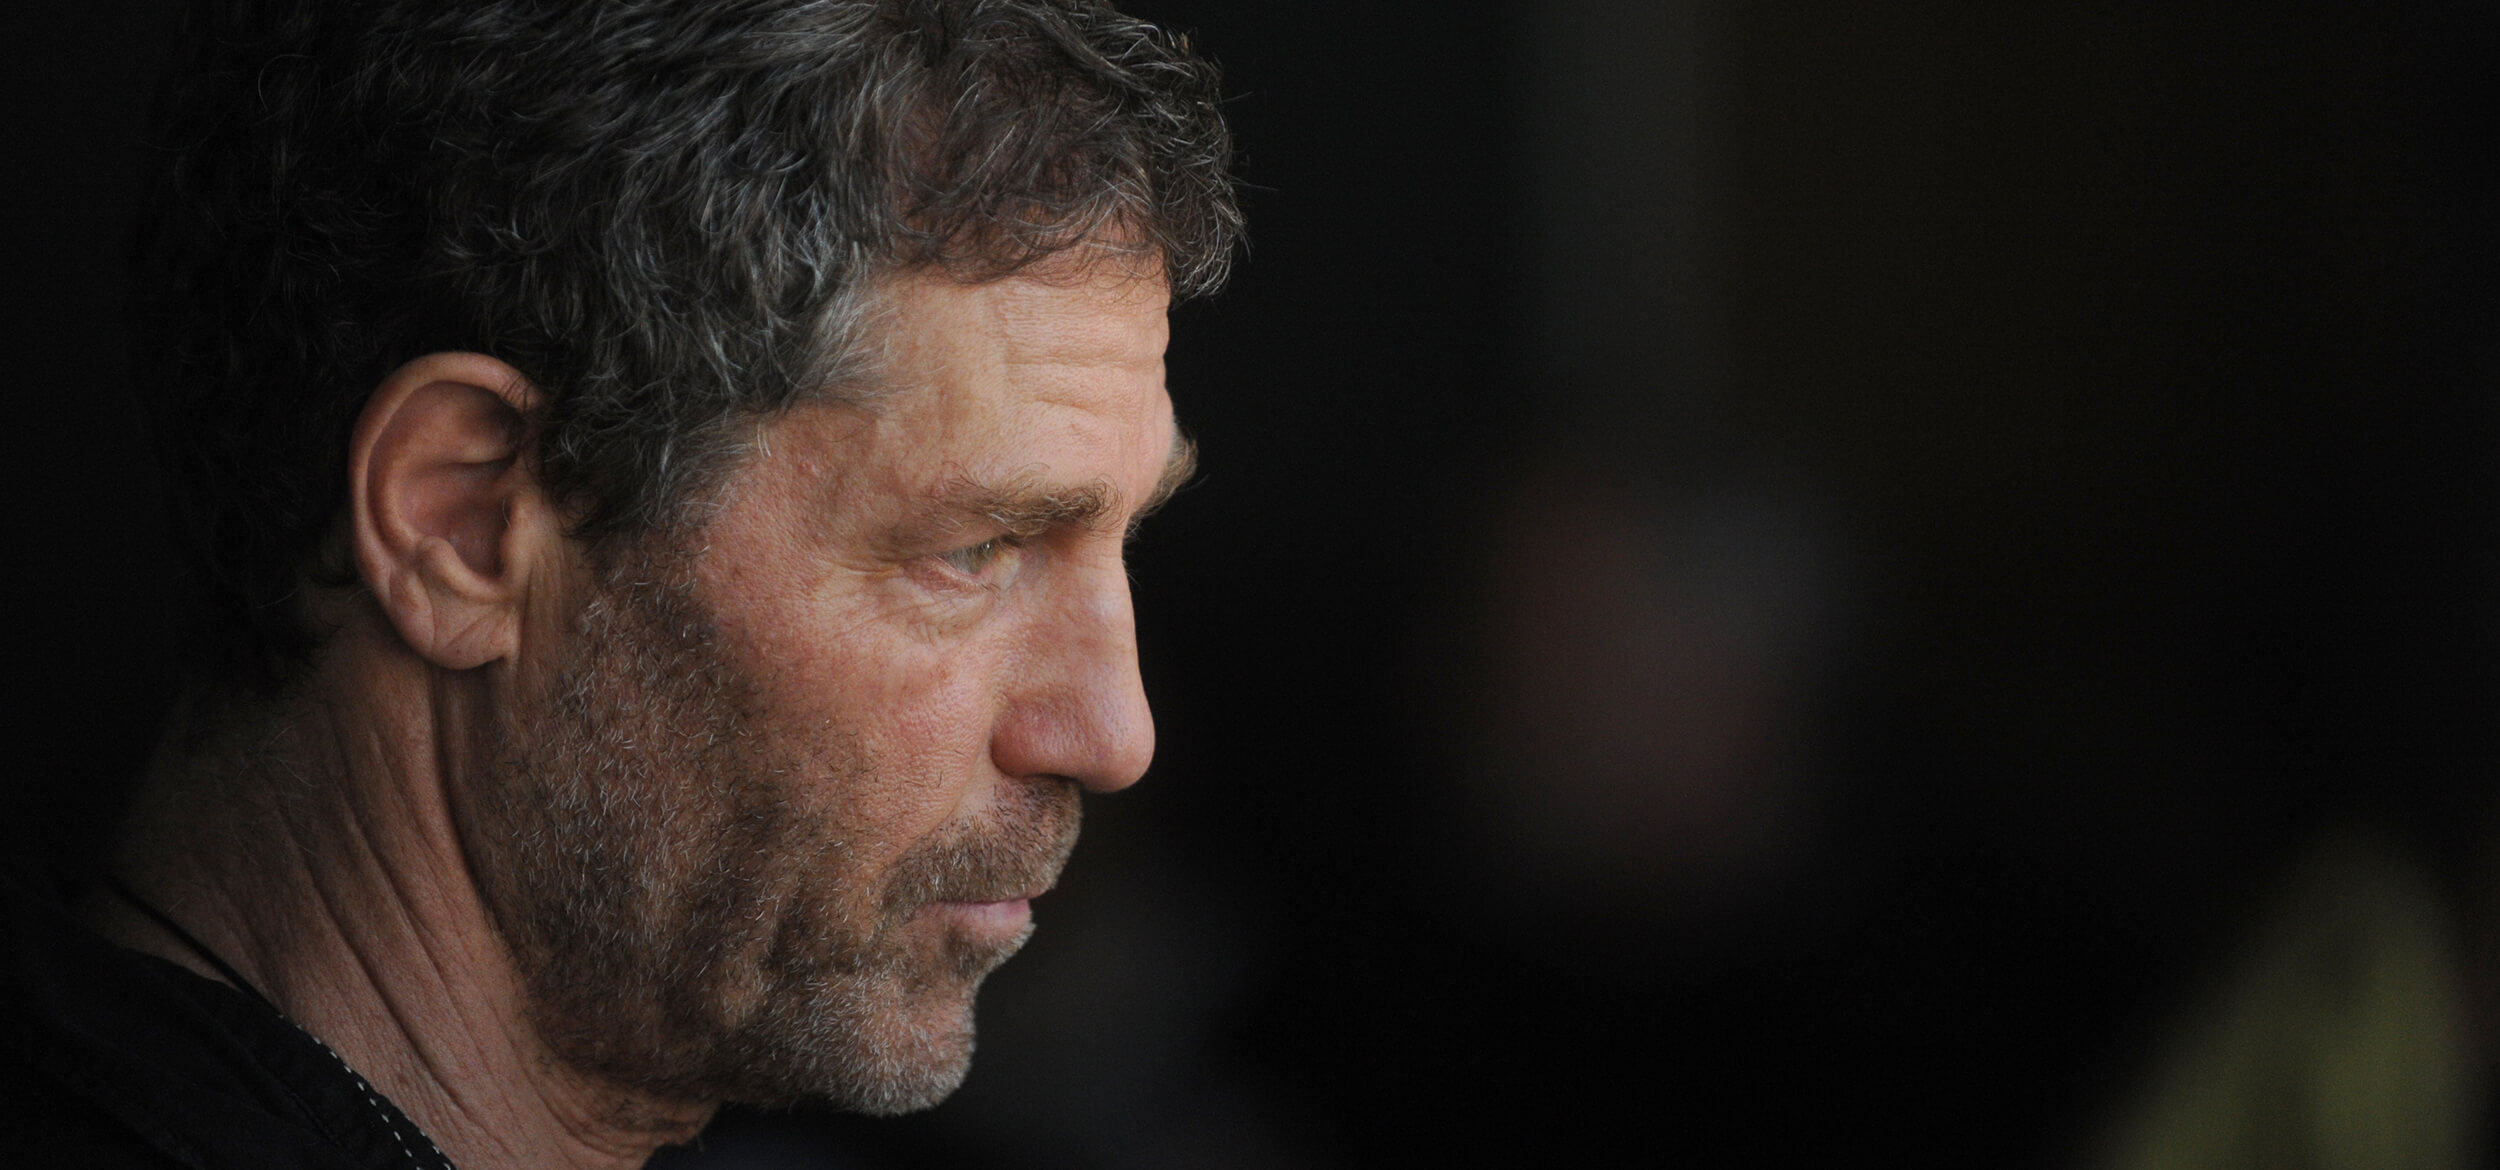 Meet Ohad Naharin - Learn More about Ohad Naharin Here